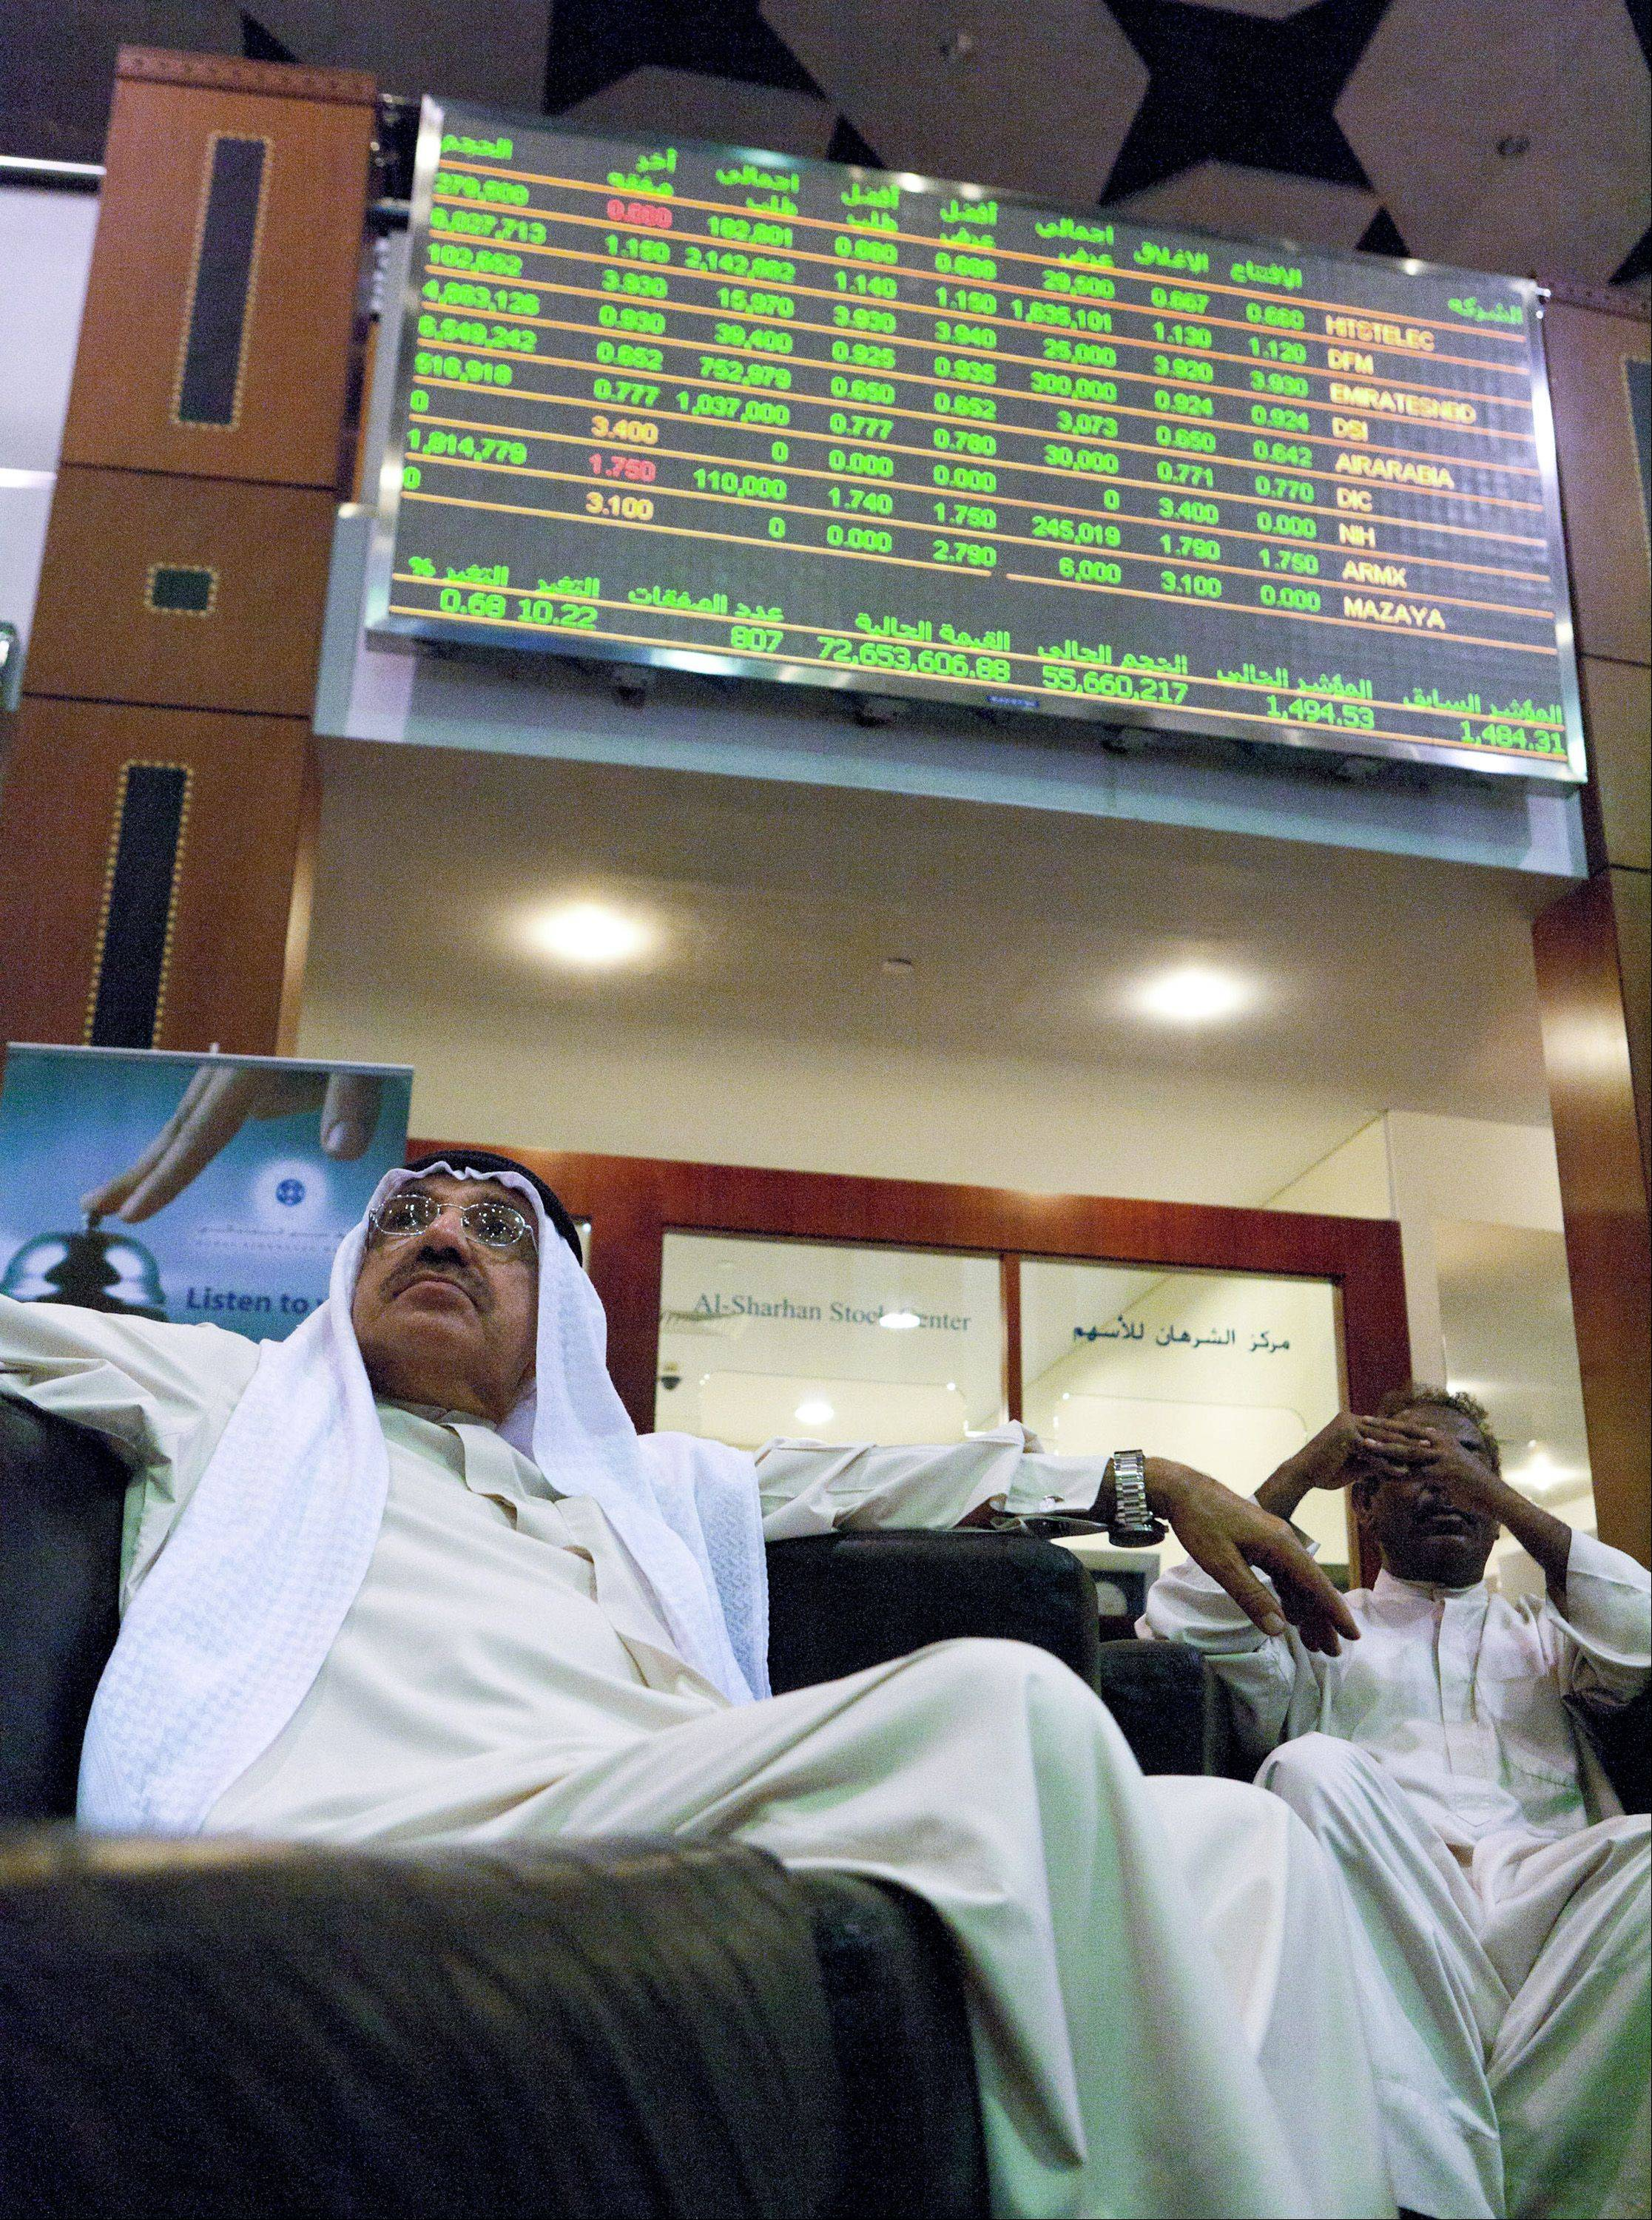 Visitors watch financial data on screens inside the Dubai Financial Market in Dubai, United Arab Emirates, on Monday, Aug. 8, 2011. Dubai's stock index retreated to the lowest since March as global financial markets slumped amid concern that Standard & Poor's downgrading of the U.S.'s credit rating may stall the global economic recovery.